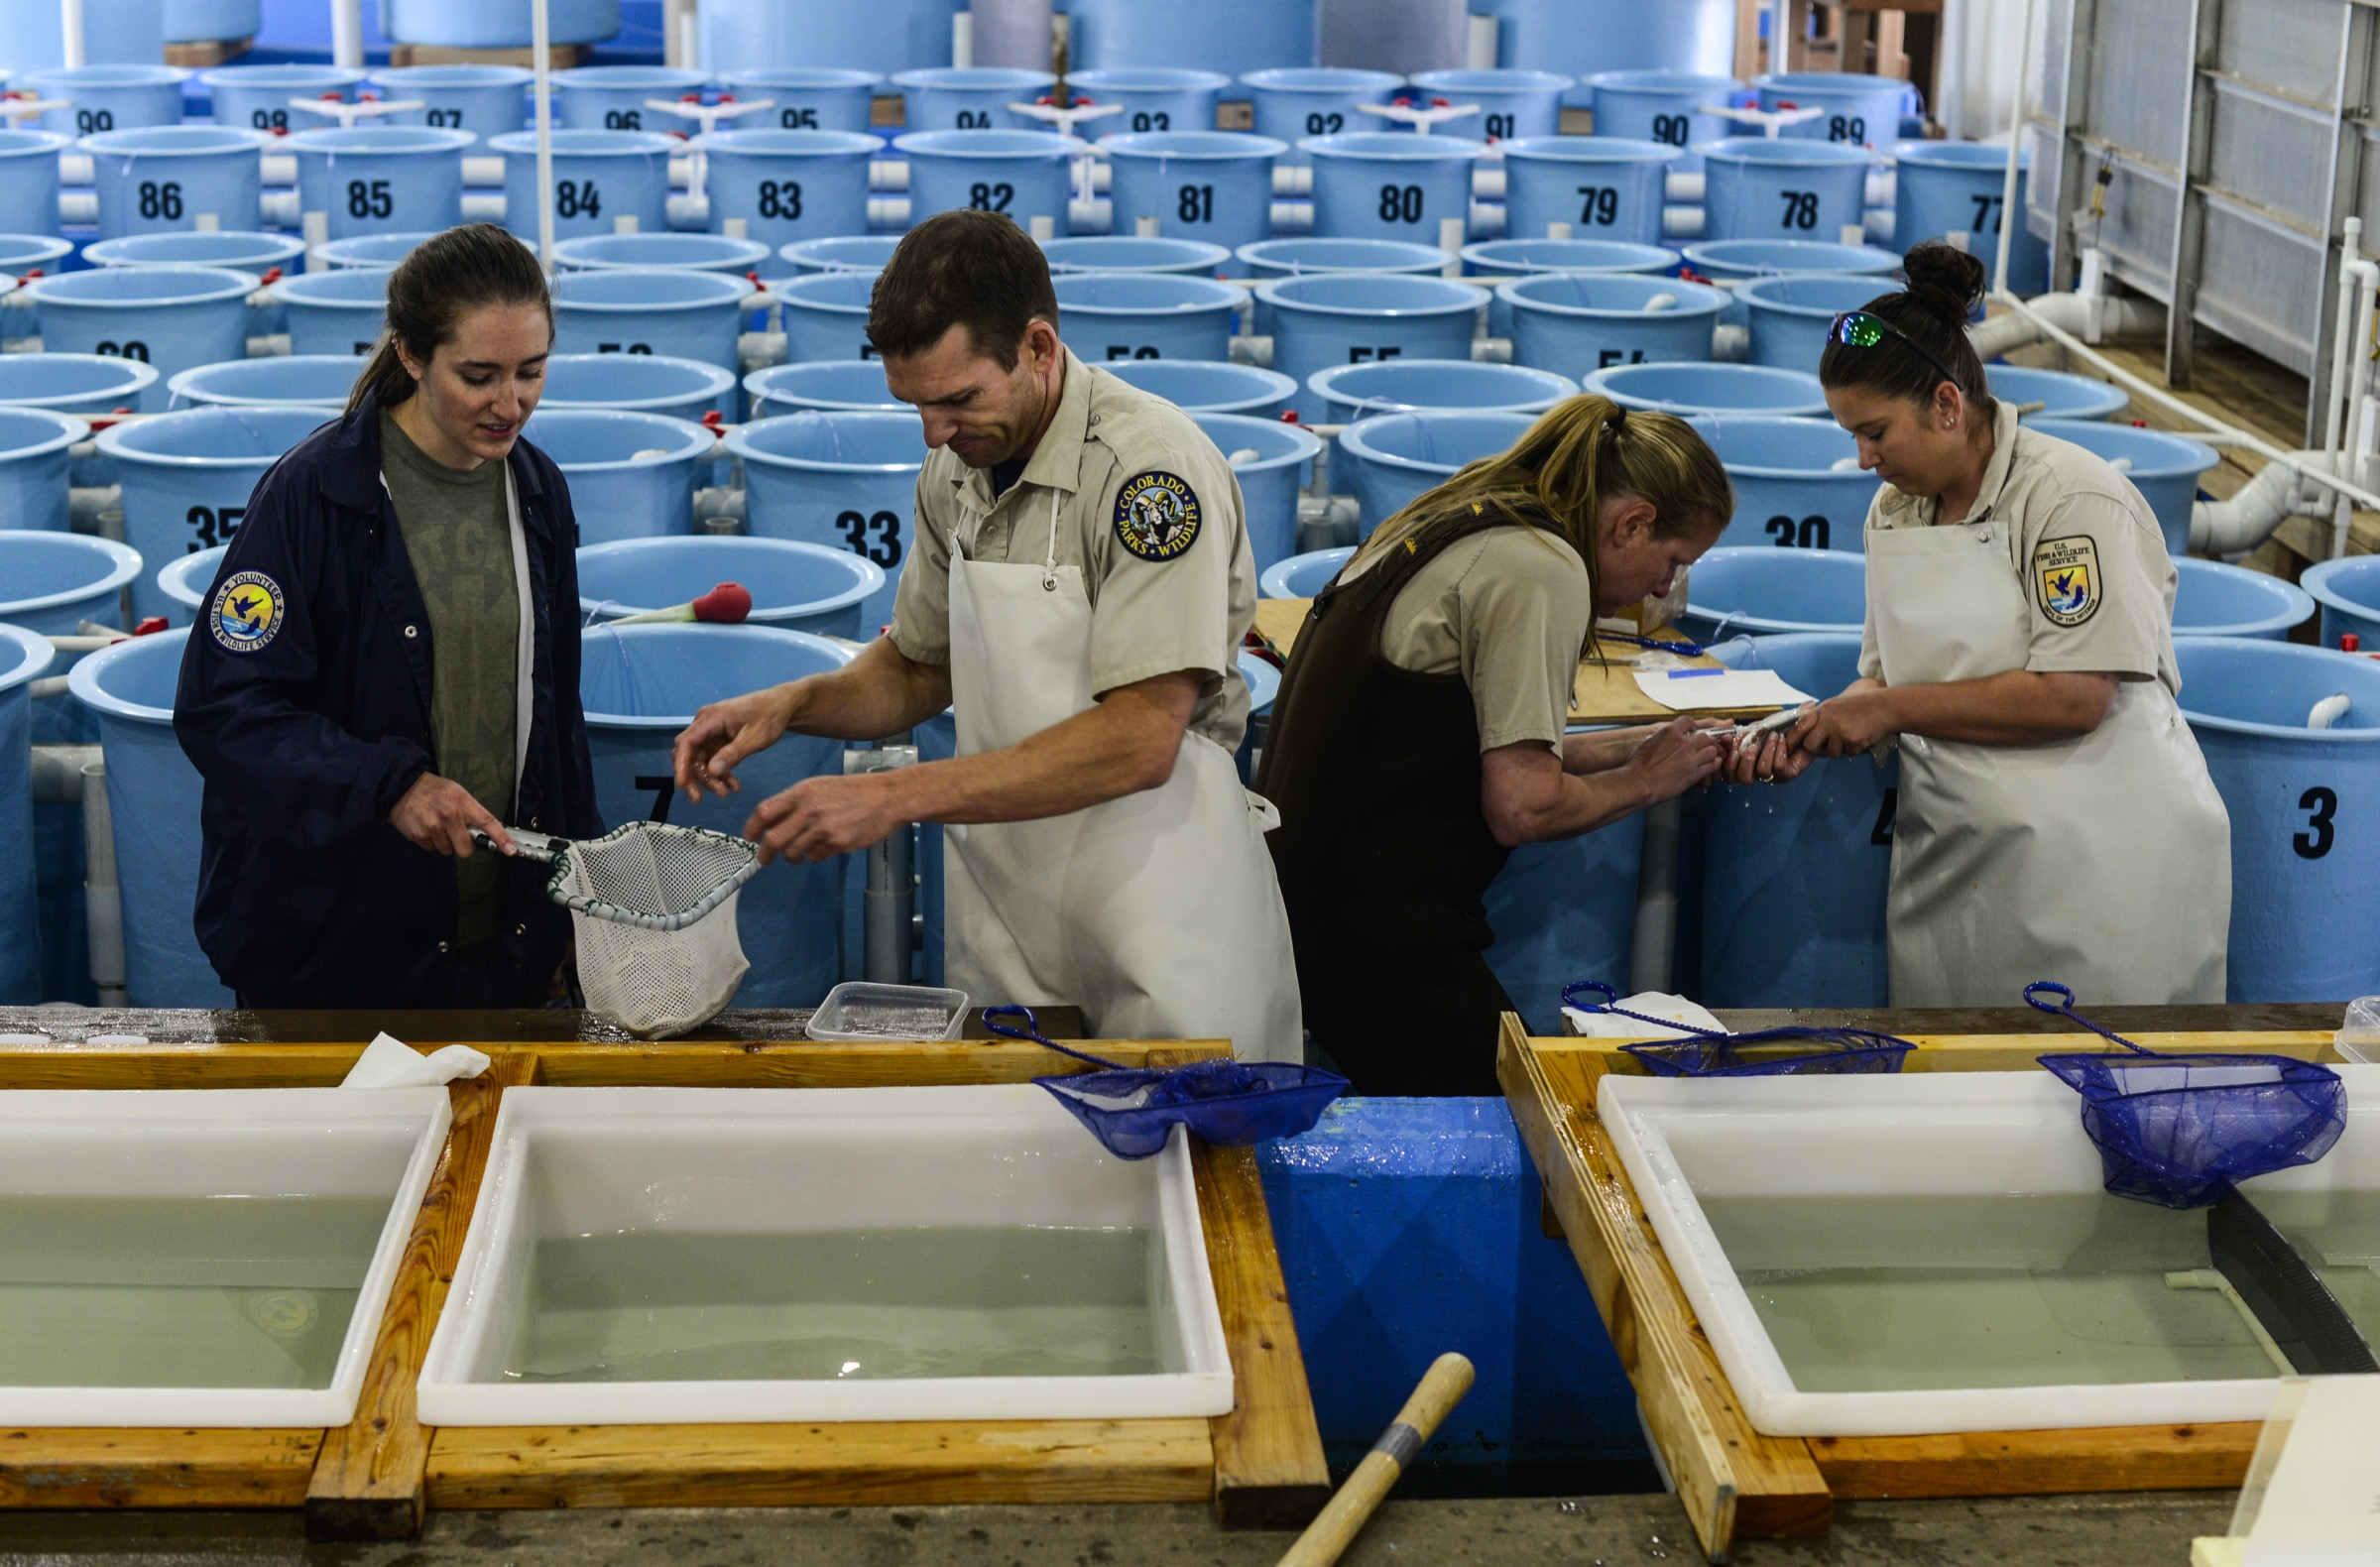 U.S. Fish and Wildlife Service biologists working at the hatchery in Leadville, Colorado carefully match individual greenback cutthroat trout in an attempt to maximize genetic diversity of the fish's offspring. Photograph by Lindsay Fendt